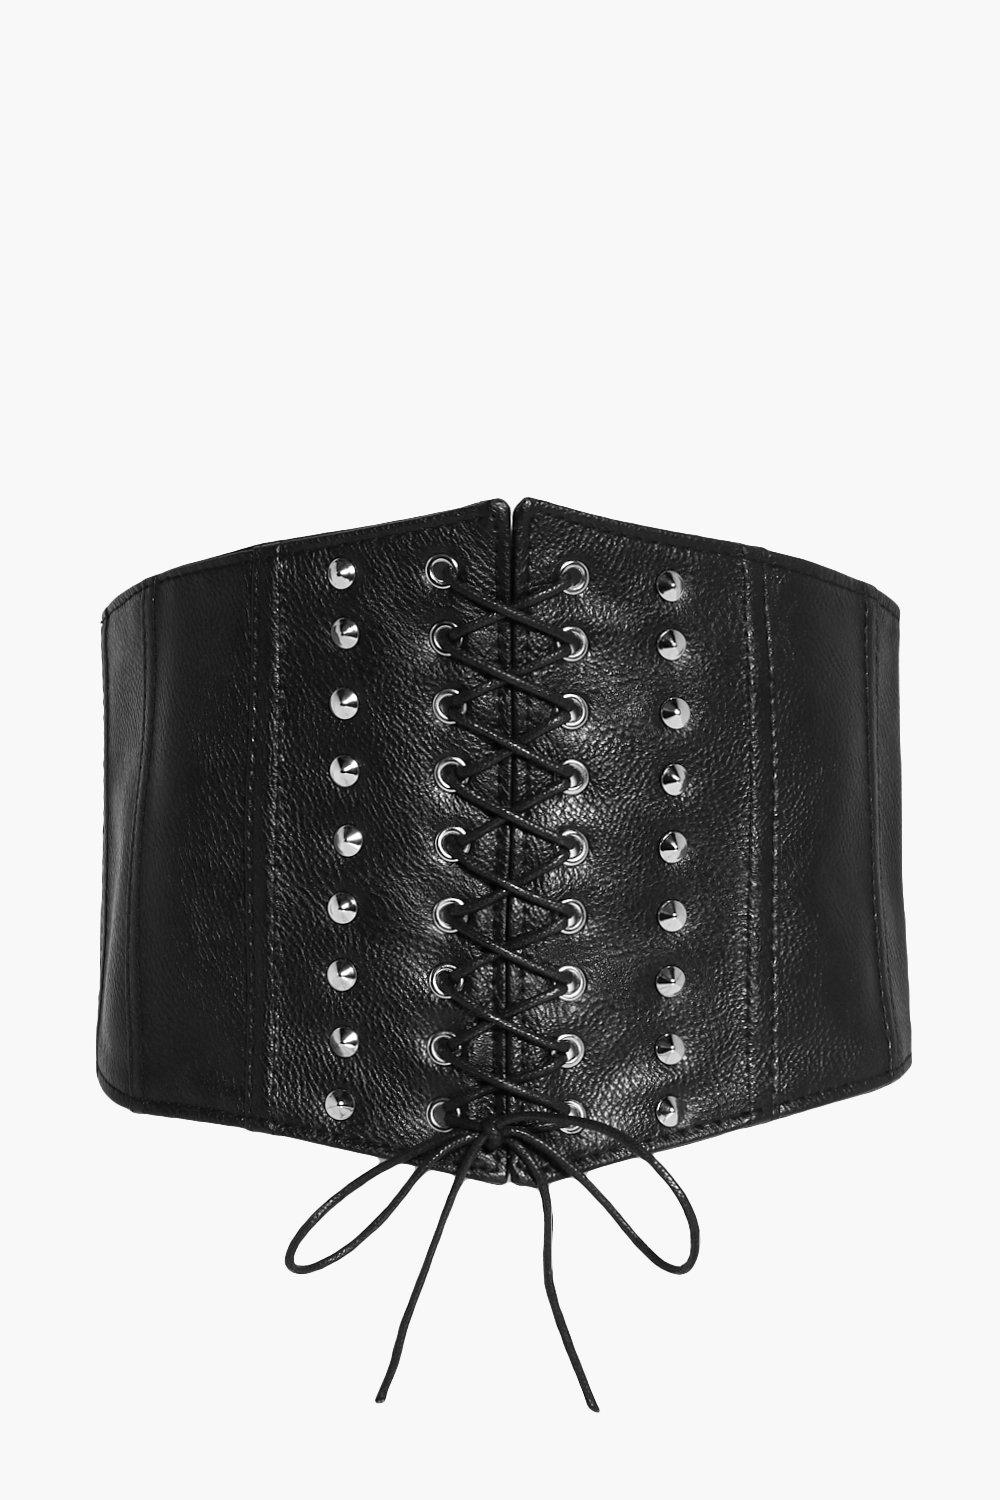 Stud & Panel Corset Belt - black - Sophie Stud & P